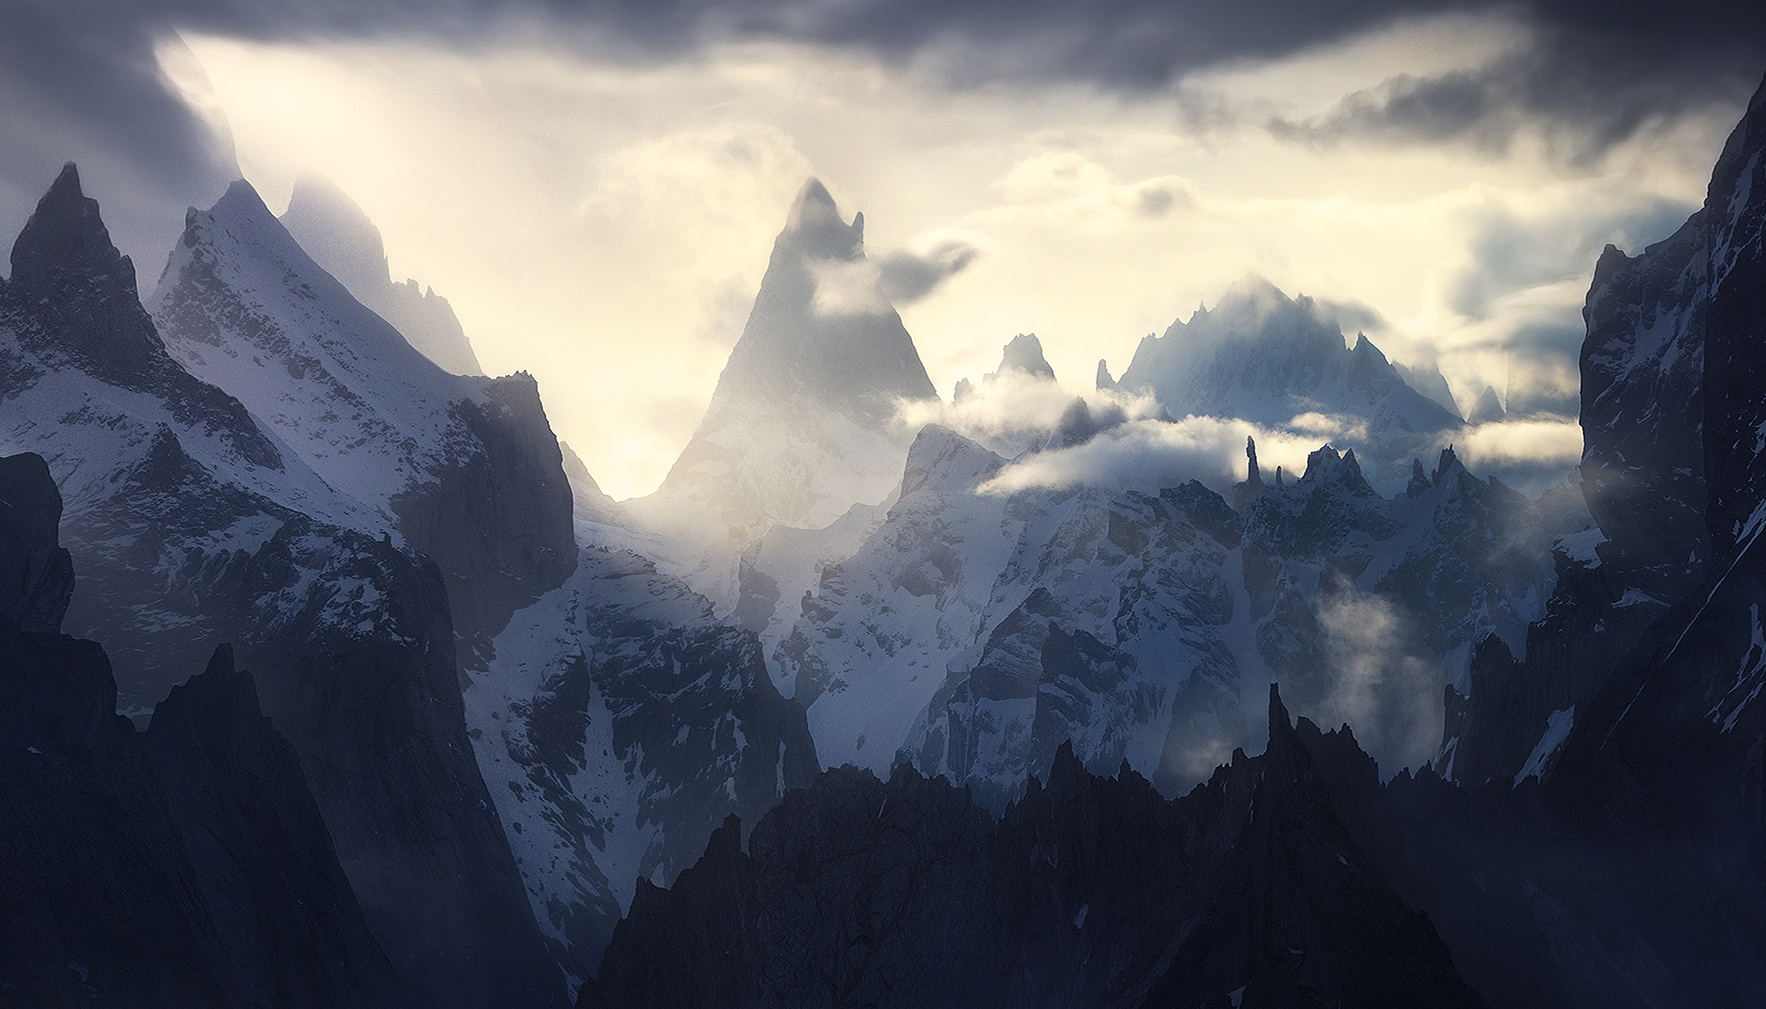 Layers of high peaks and spires adorn the crest of the Karakorum Himalayas in Pakistan